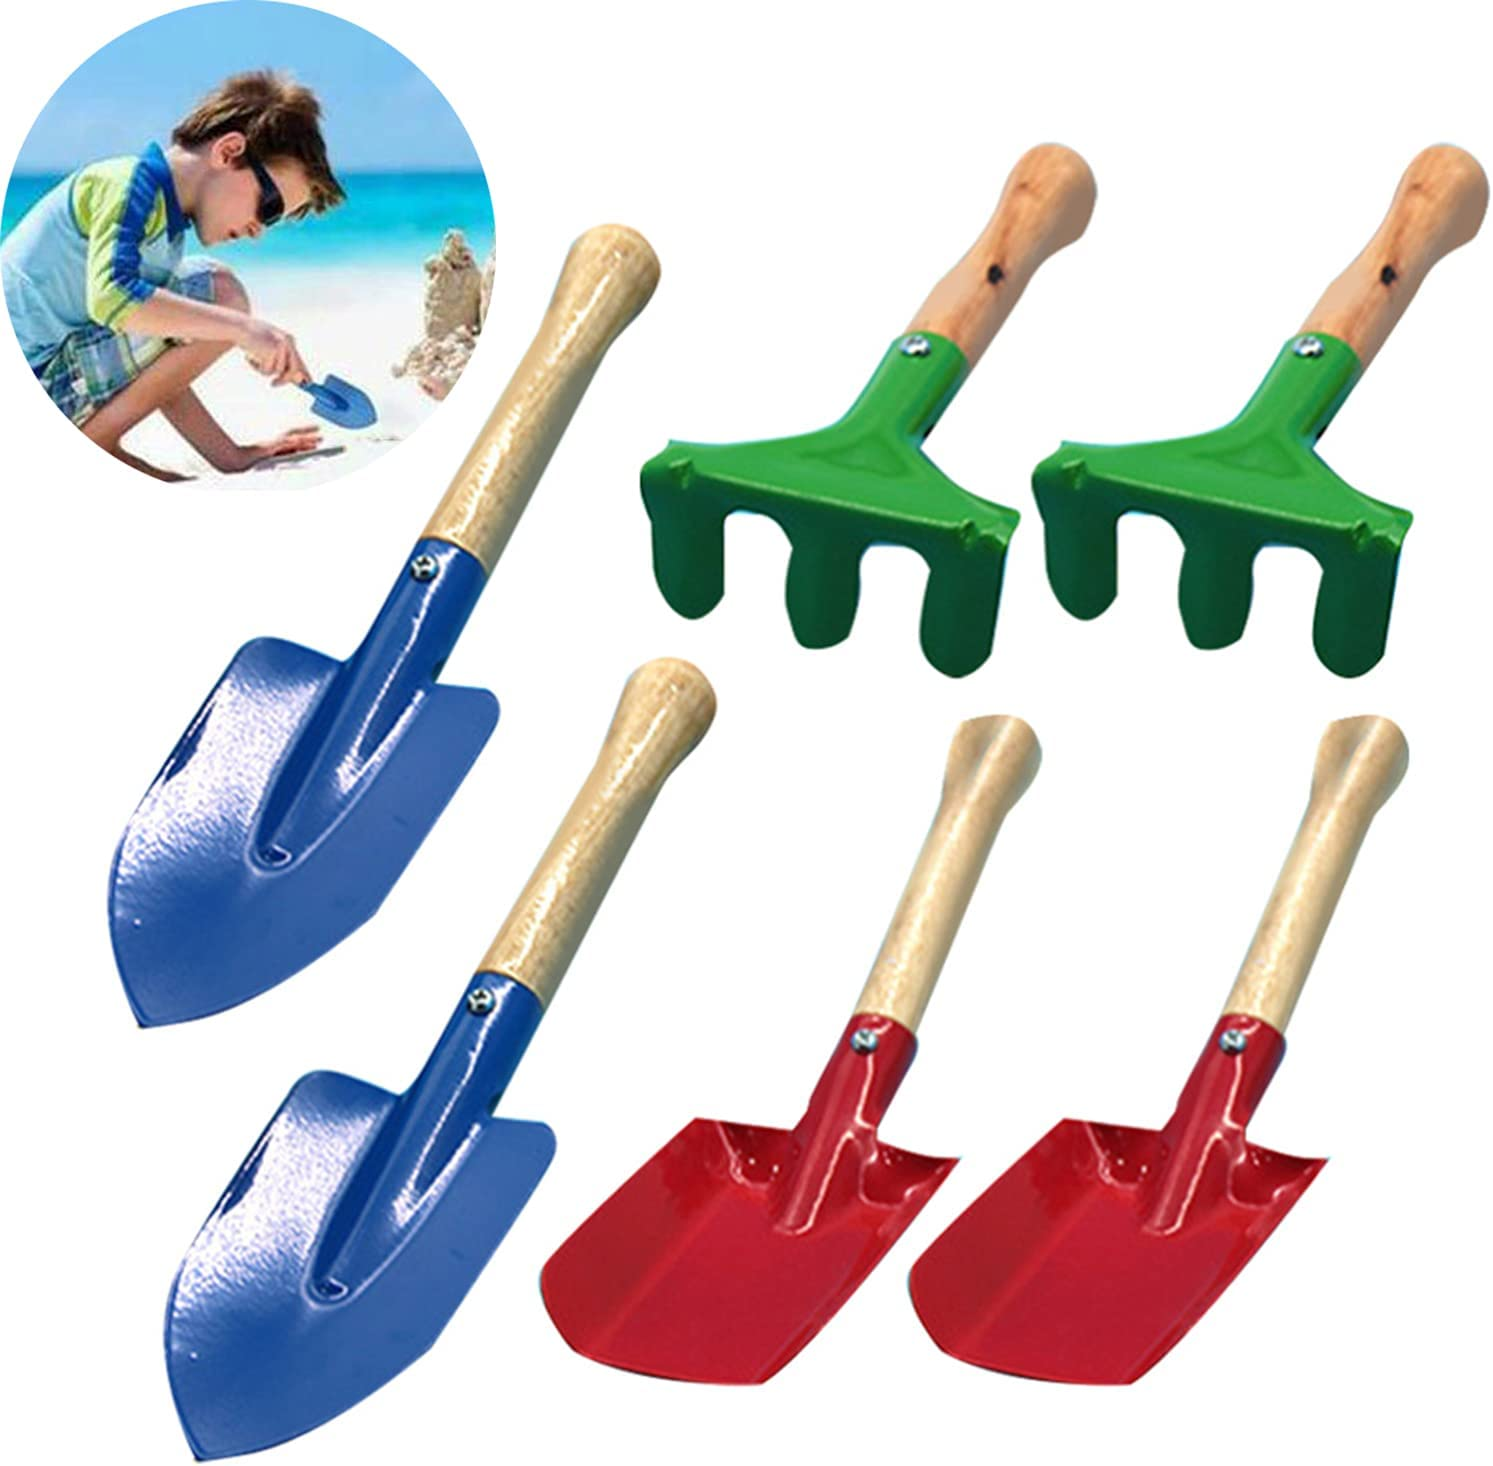 6 Pcs Kids Gardening Tools Set, Made of Metal with Sturdy Wooden Handle, 7 Inches Safe Toy Gardening Equipment Trowel, Rake & Shovel for Beach Sand, Sandbox and Soil Hand Tool for Kids : Toys & Games